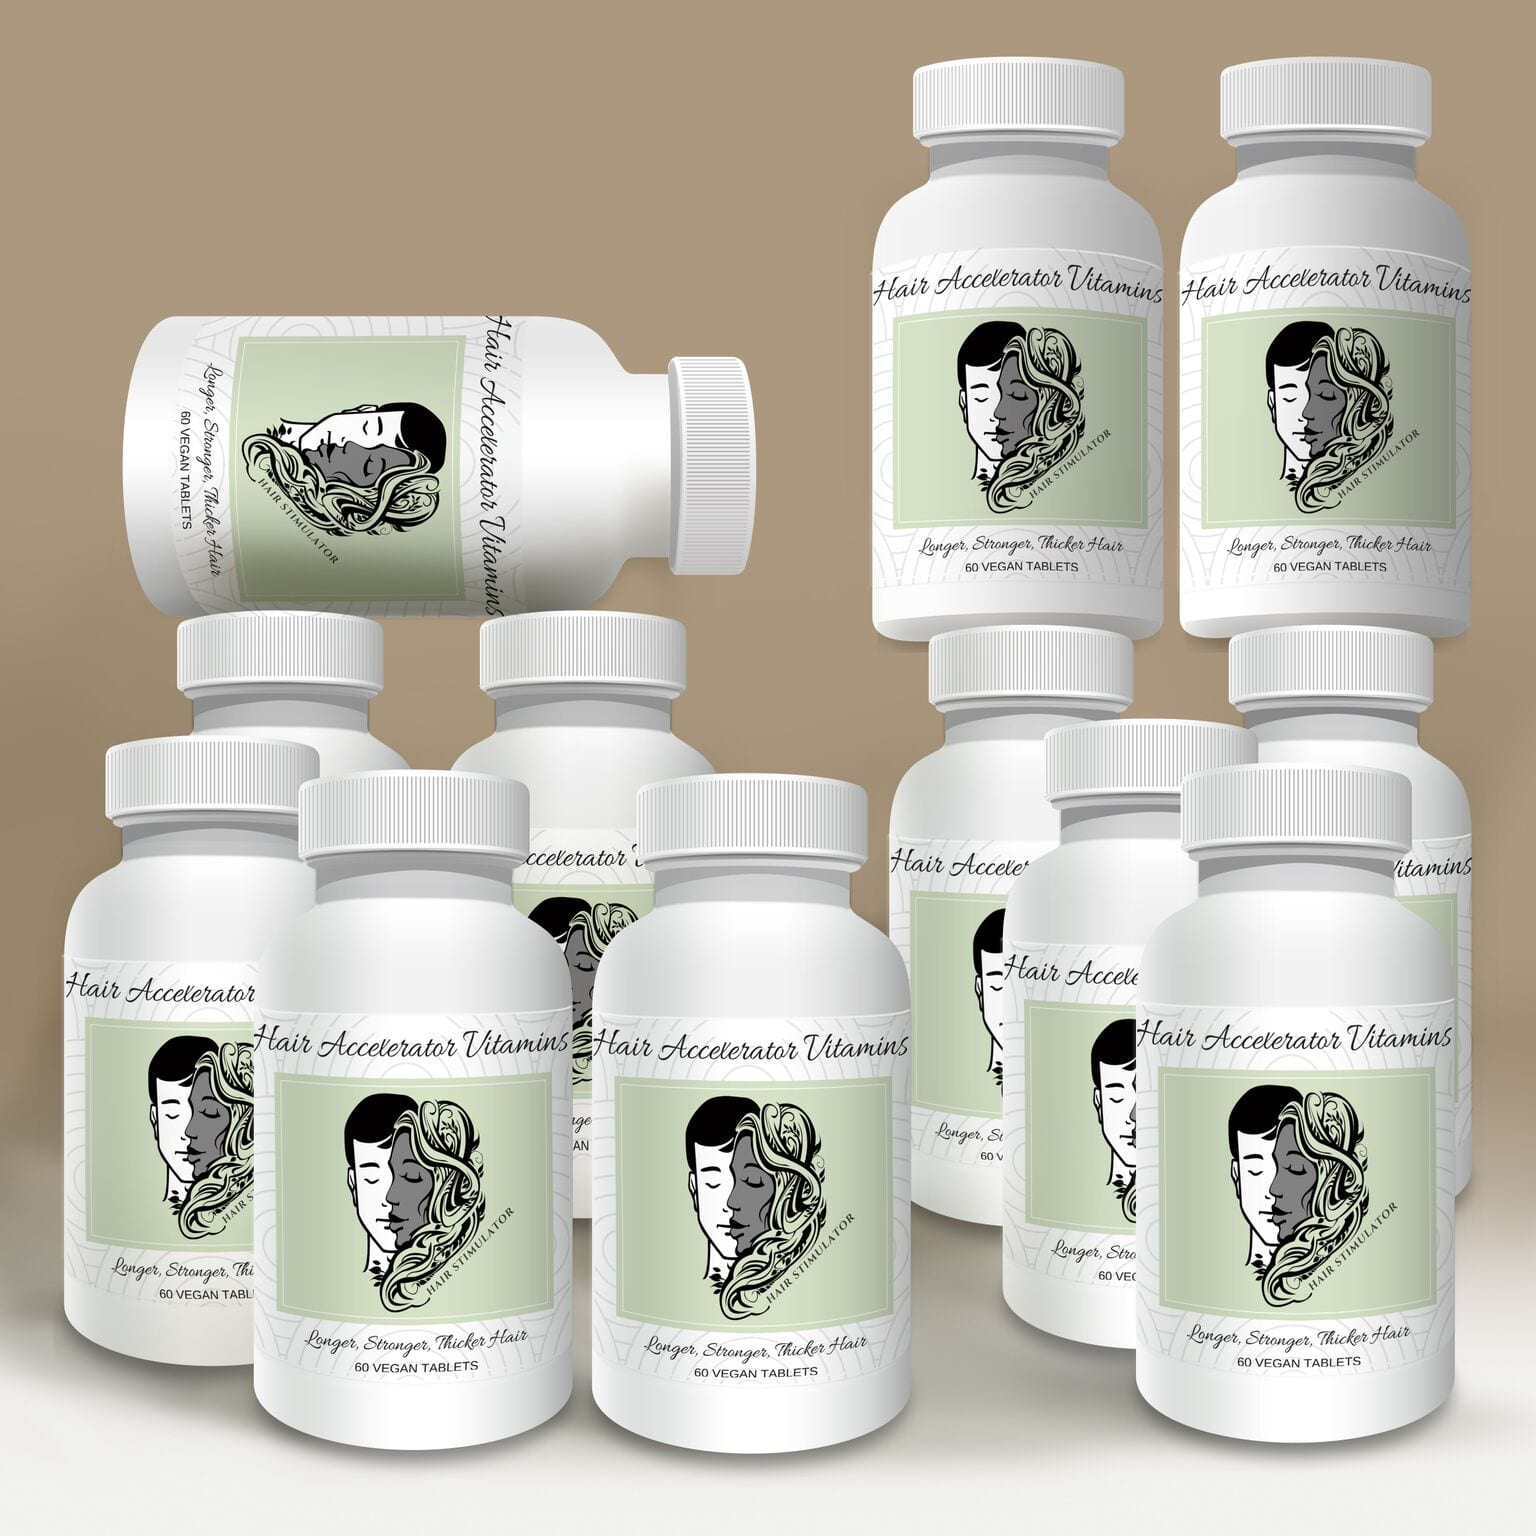 Hair Accelerator Vitamins – 12 Month Supply